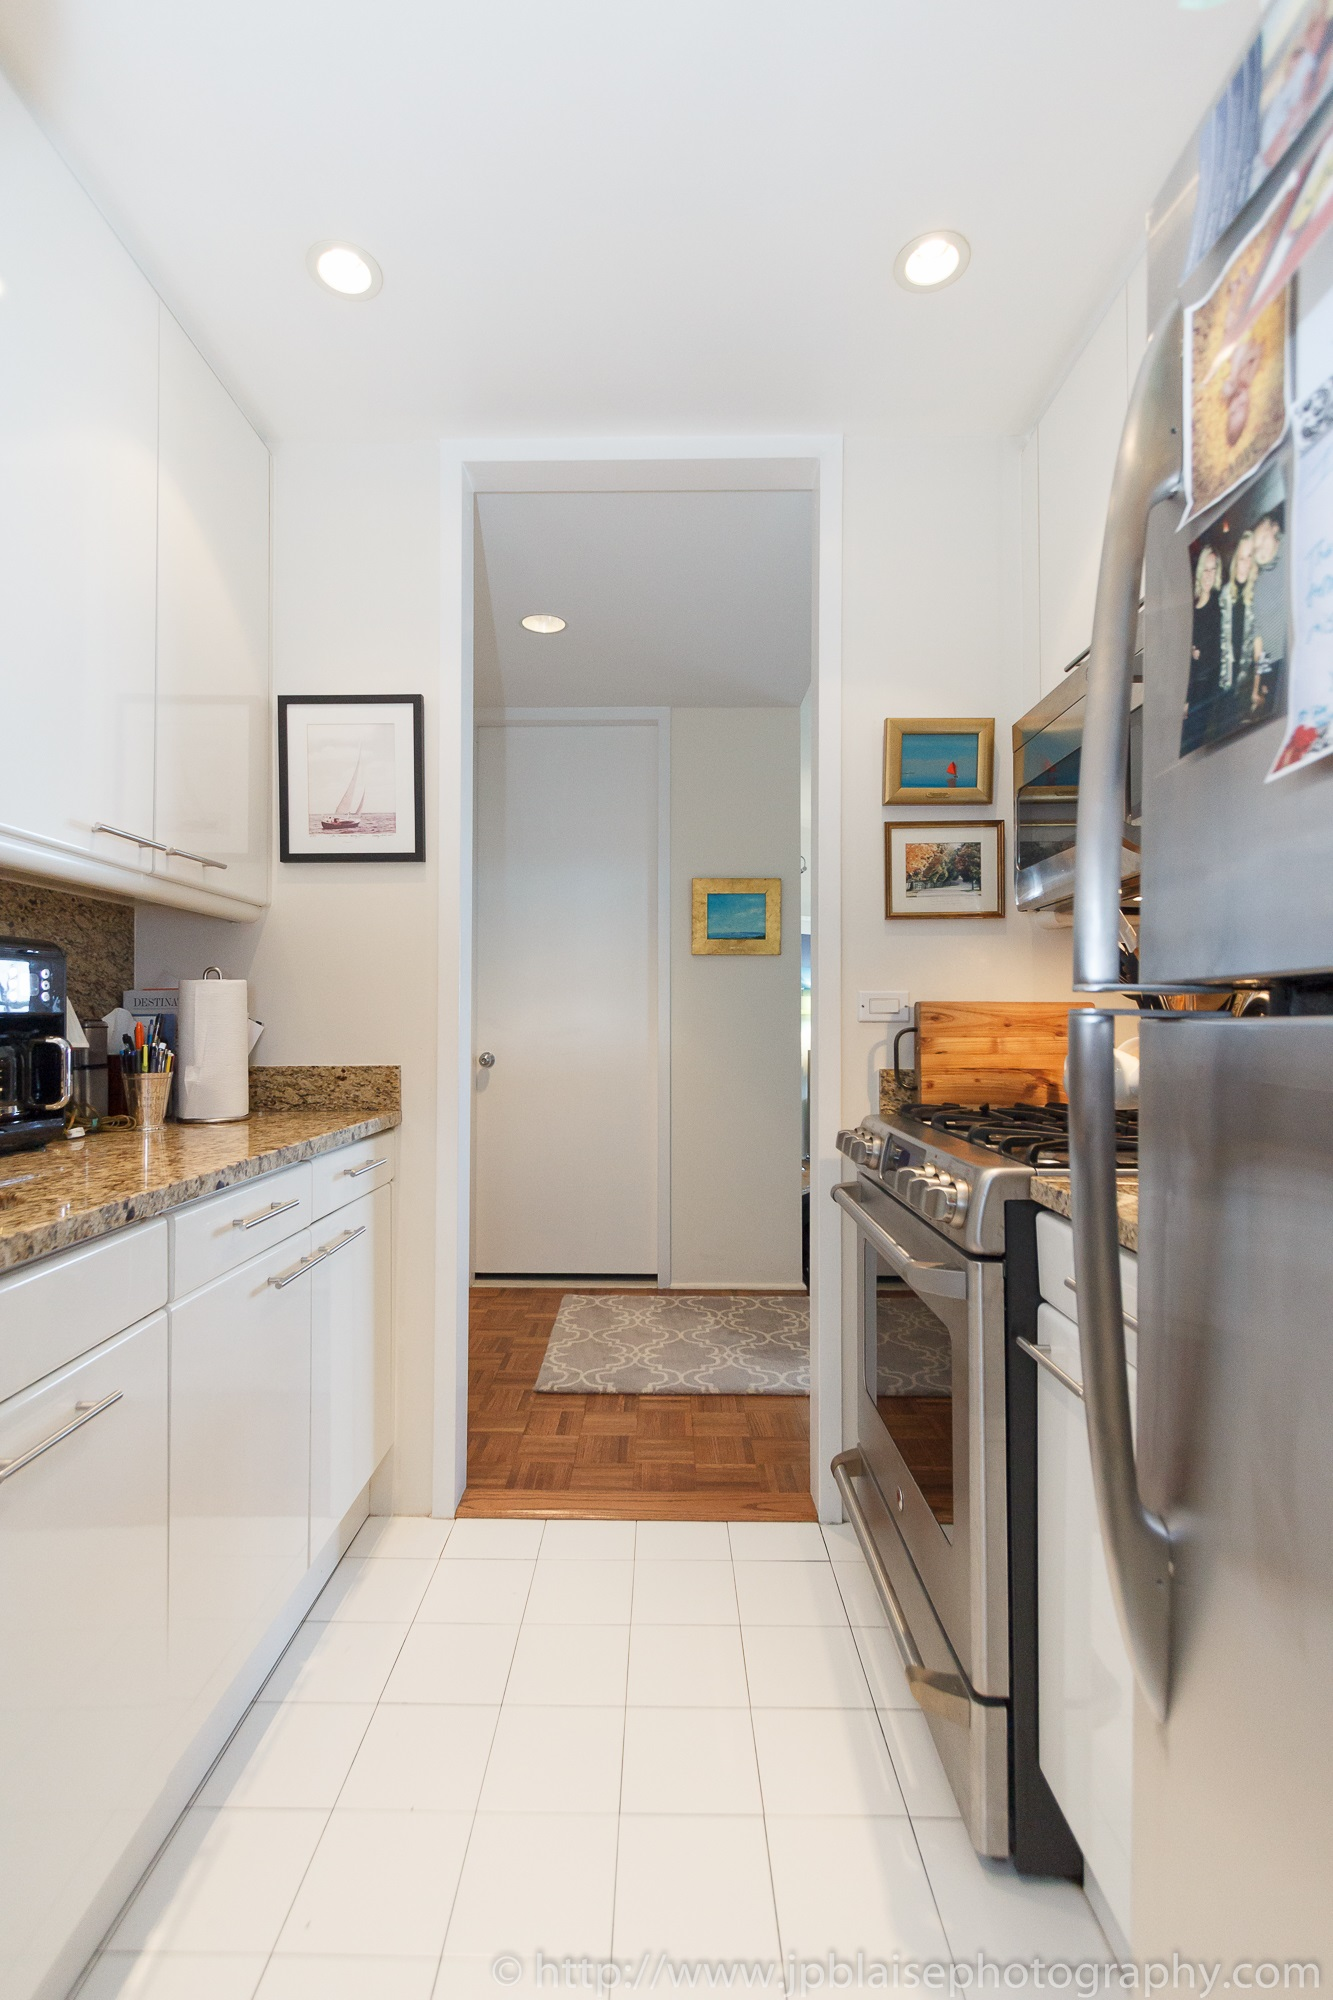 New york apartment photographer adventures one bedroom for 1 bedroom apartments for sale nyc